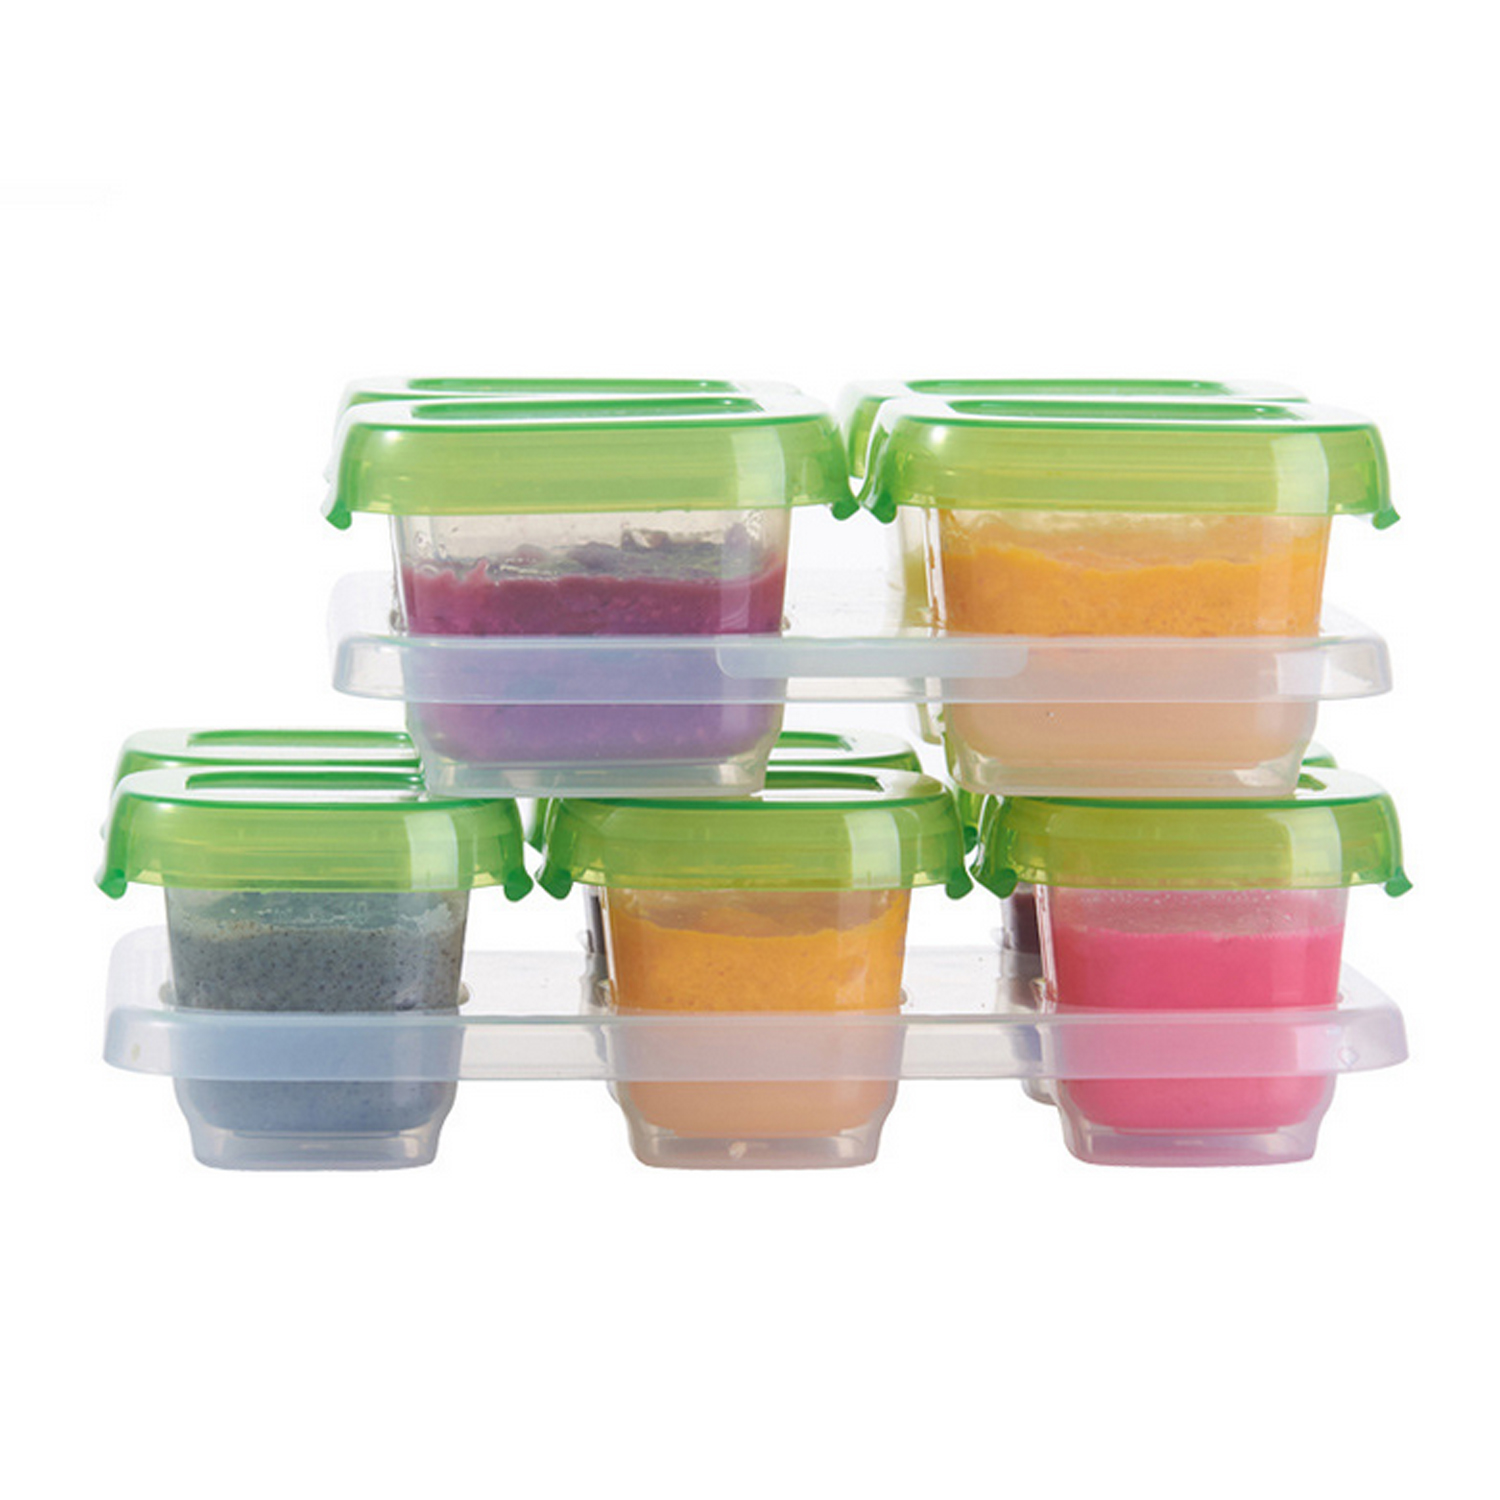 Mini Reusable Leak-Proof Baby Formula Food Storage Container Freezer Cubes Cups Jars Box Case With Trays For Infants Toddler